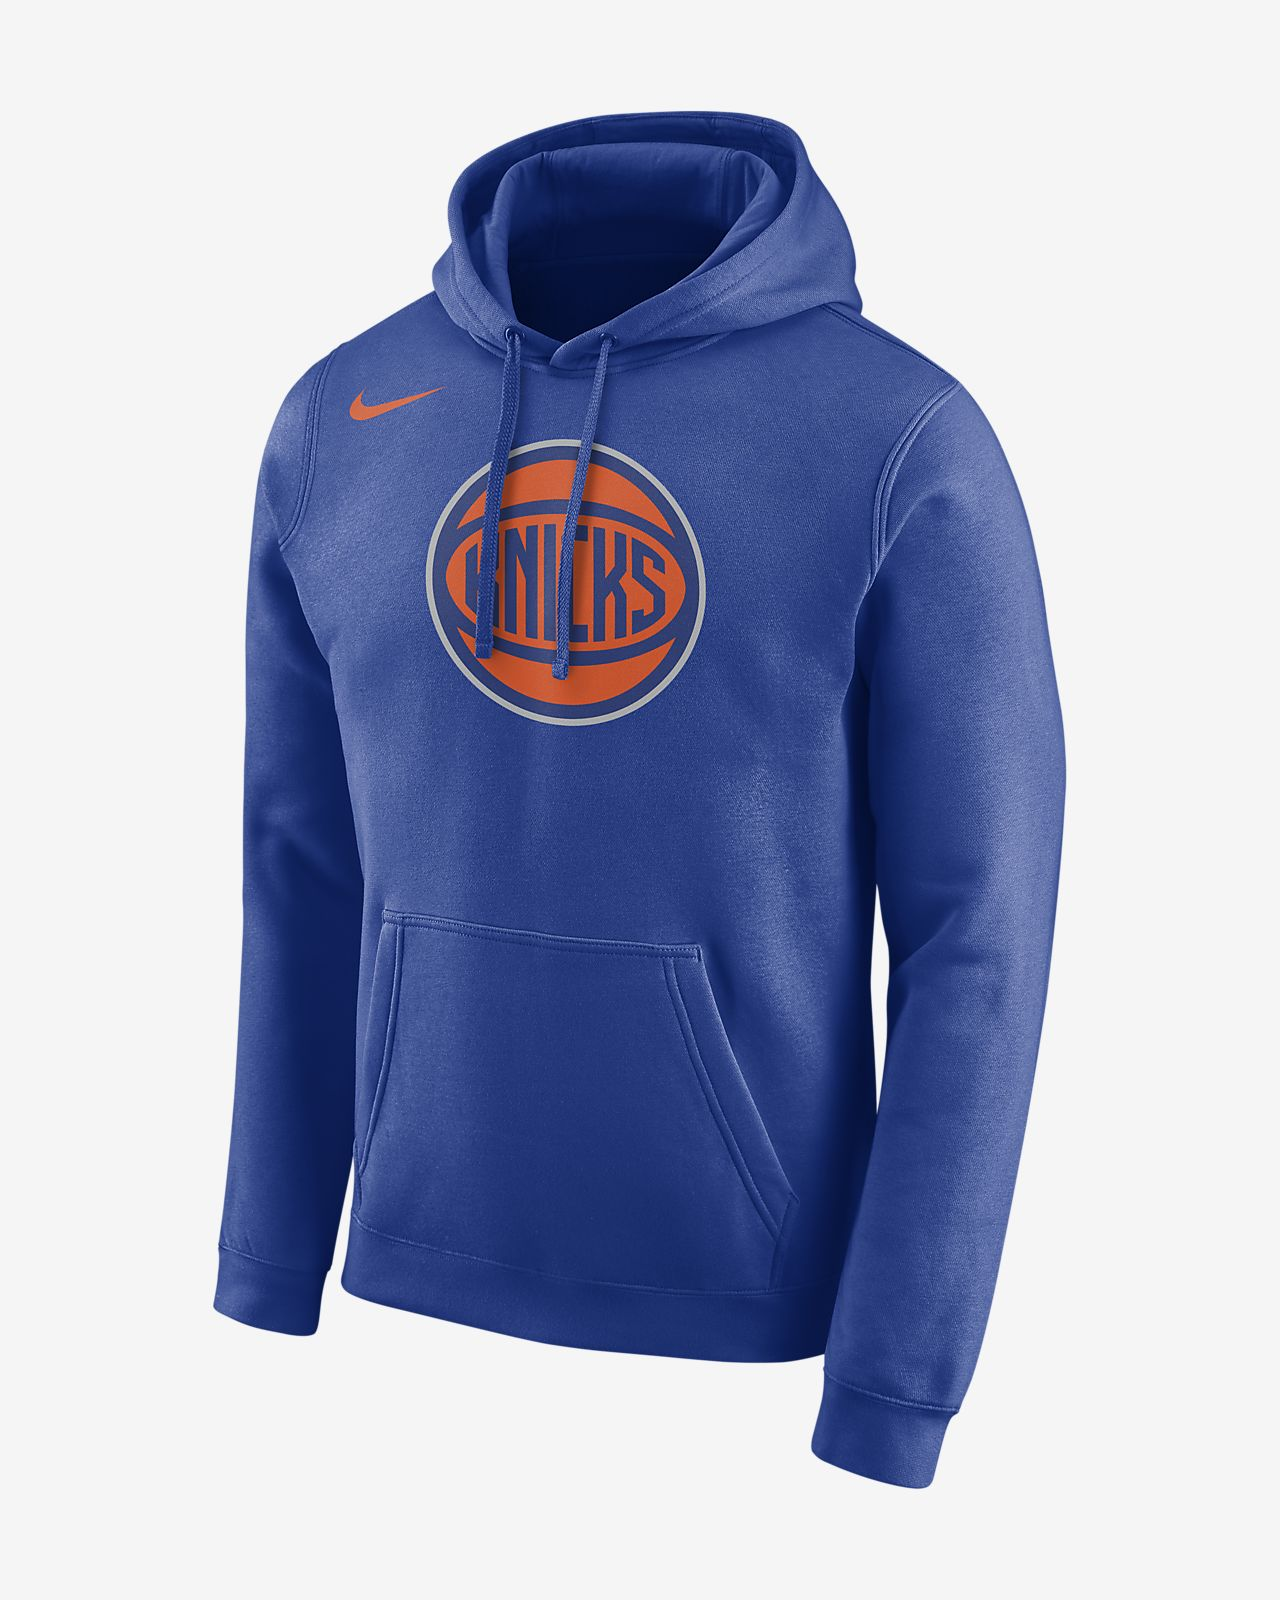 ca8ce989f483 New York Knicks Nike Men s Logo NBA Hoodie. Nike.com